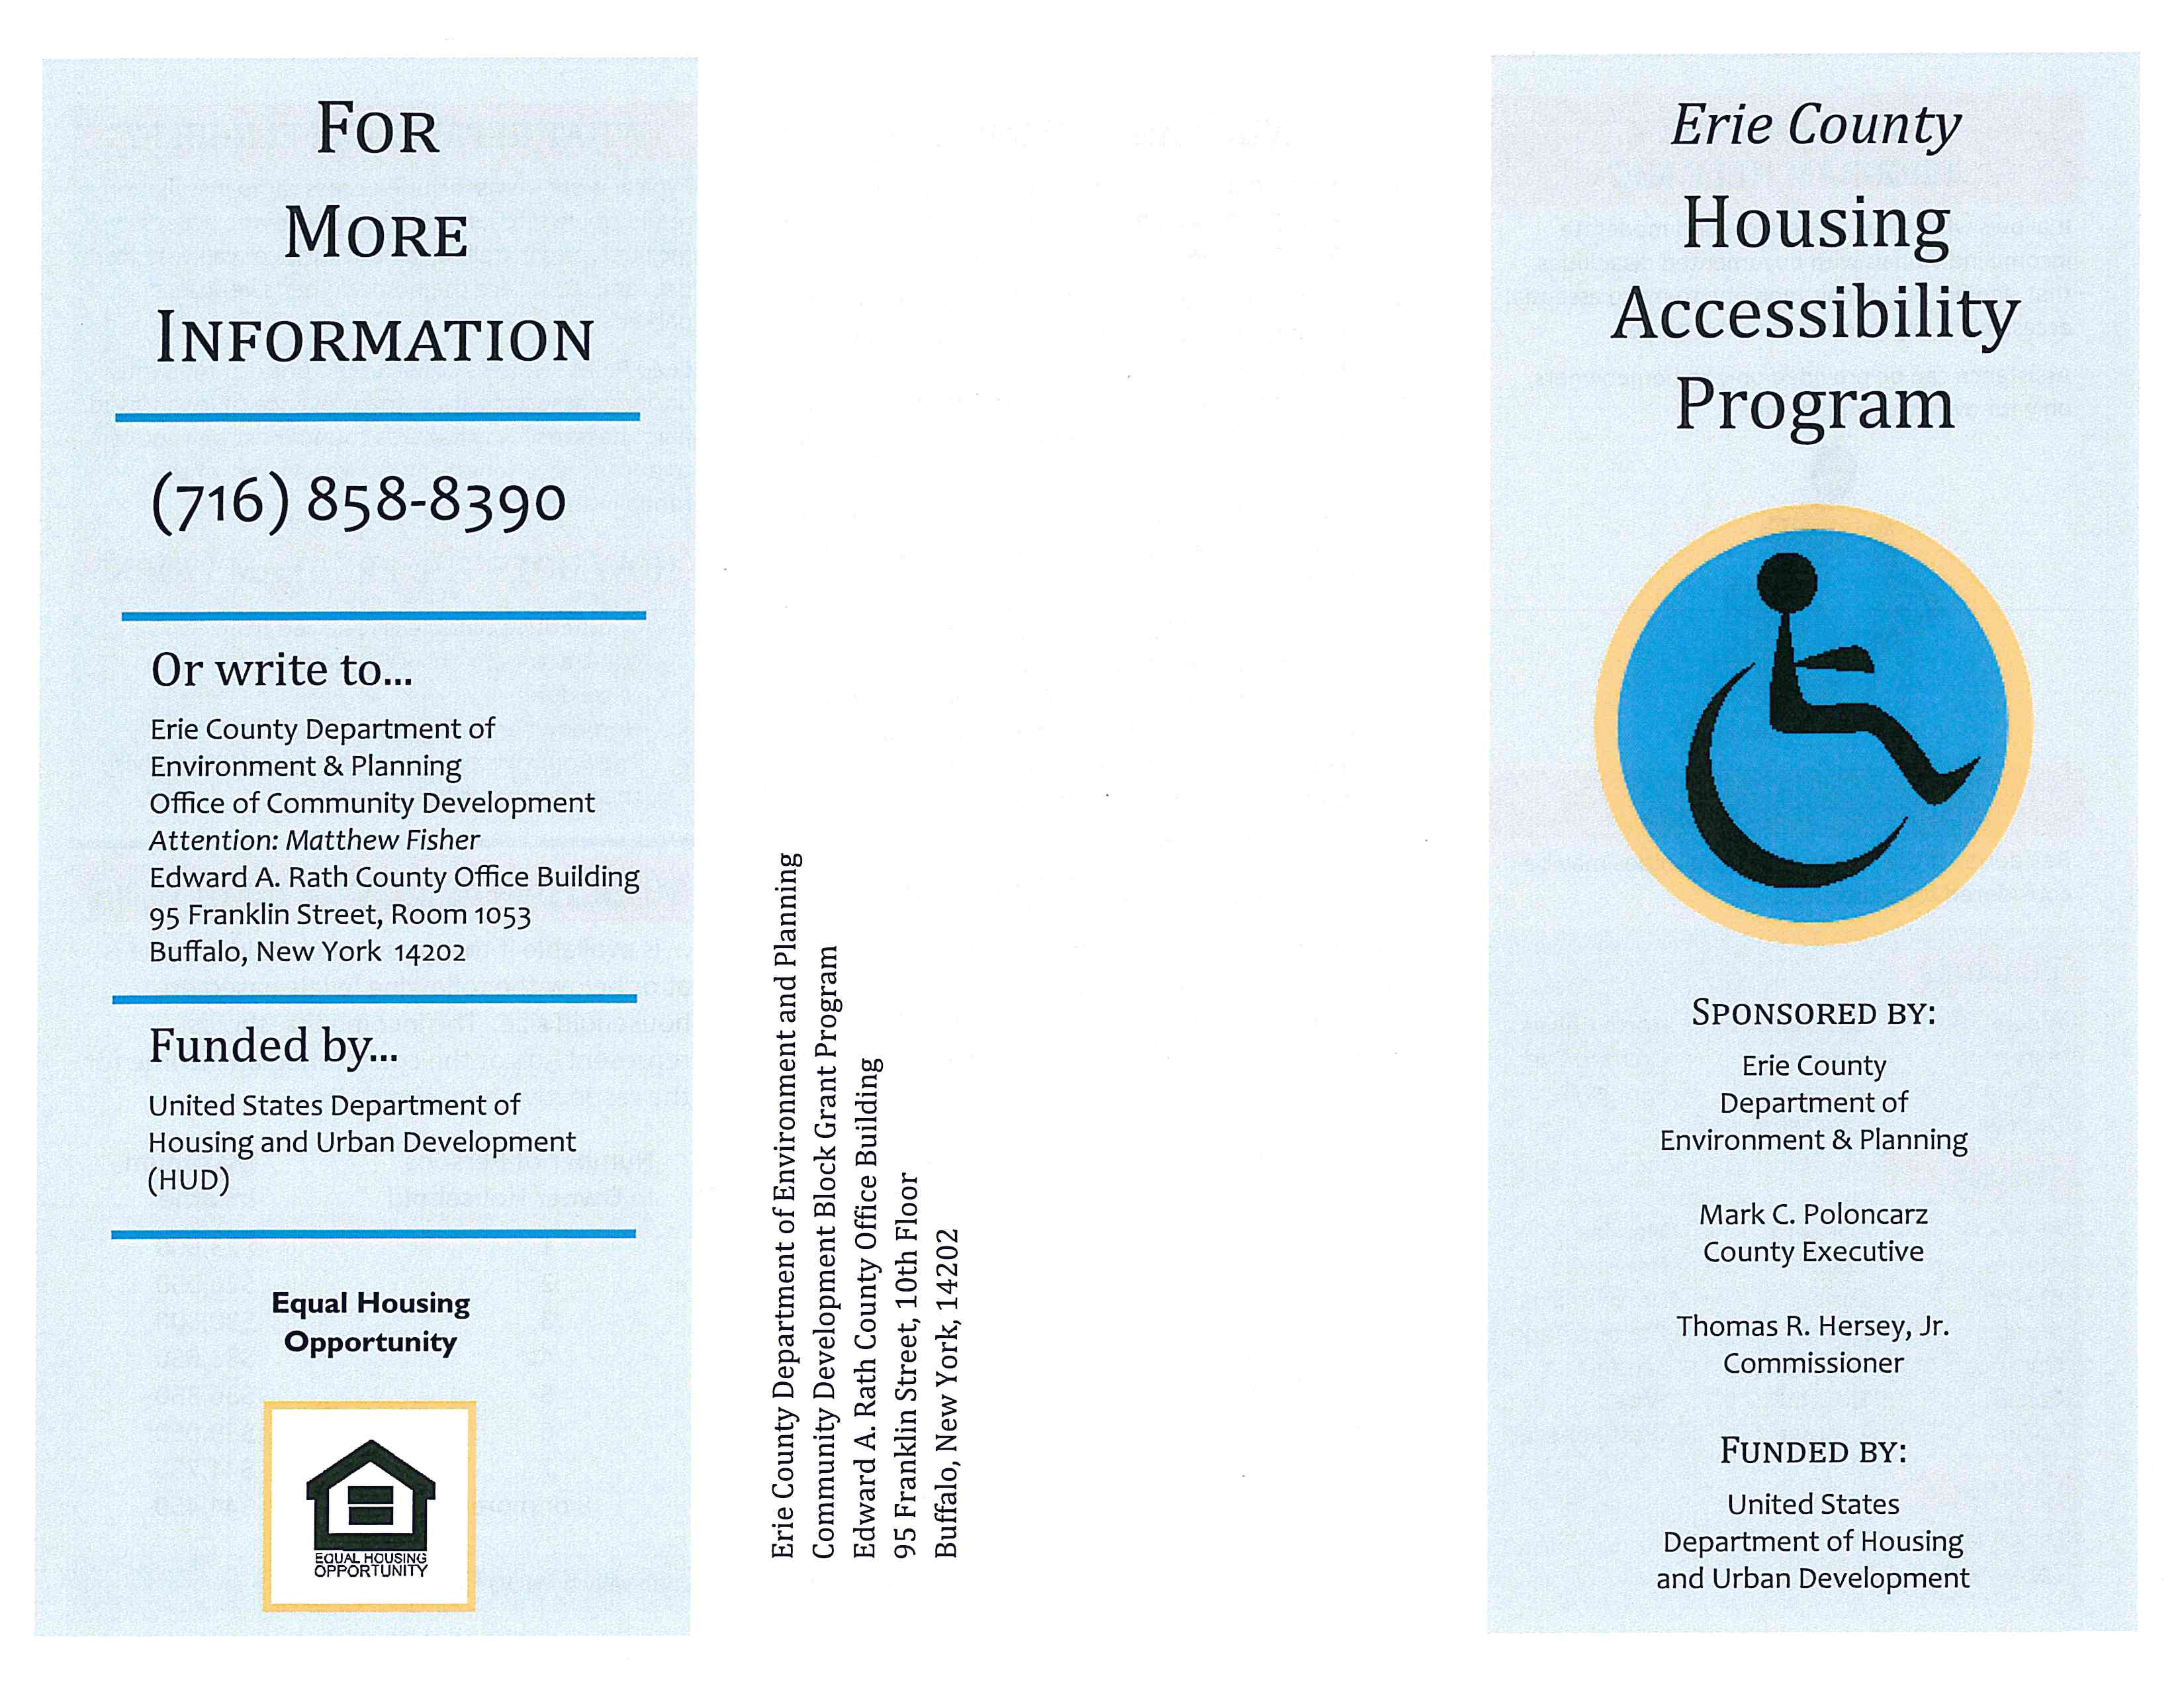 Housing Accessibility Program pg 2